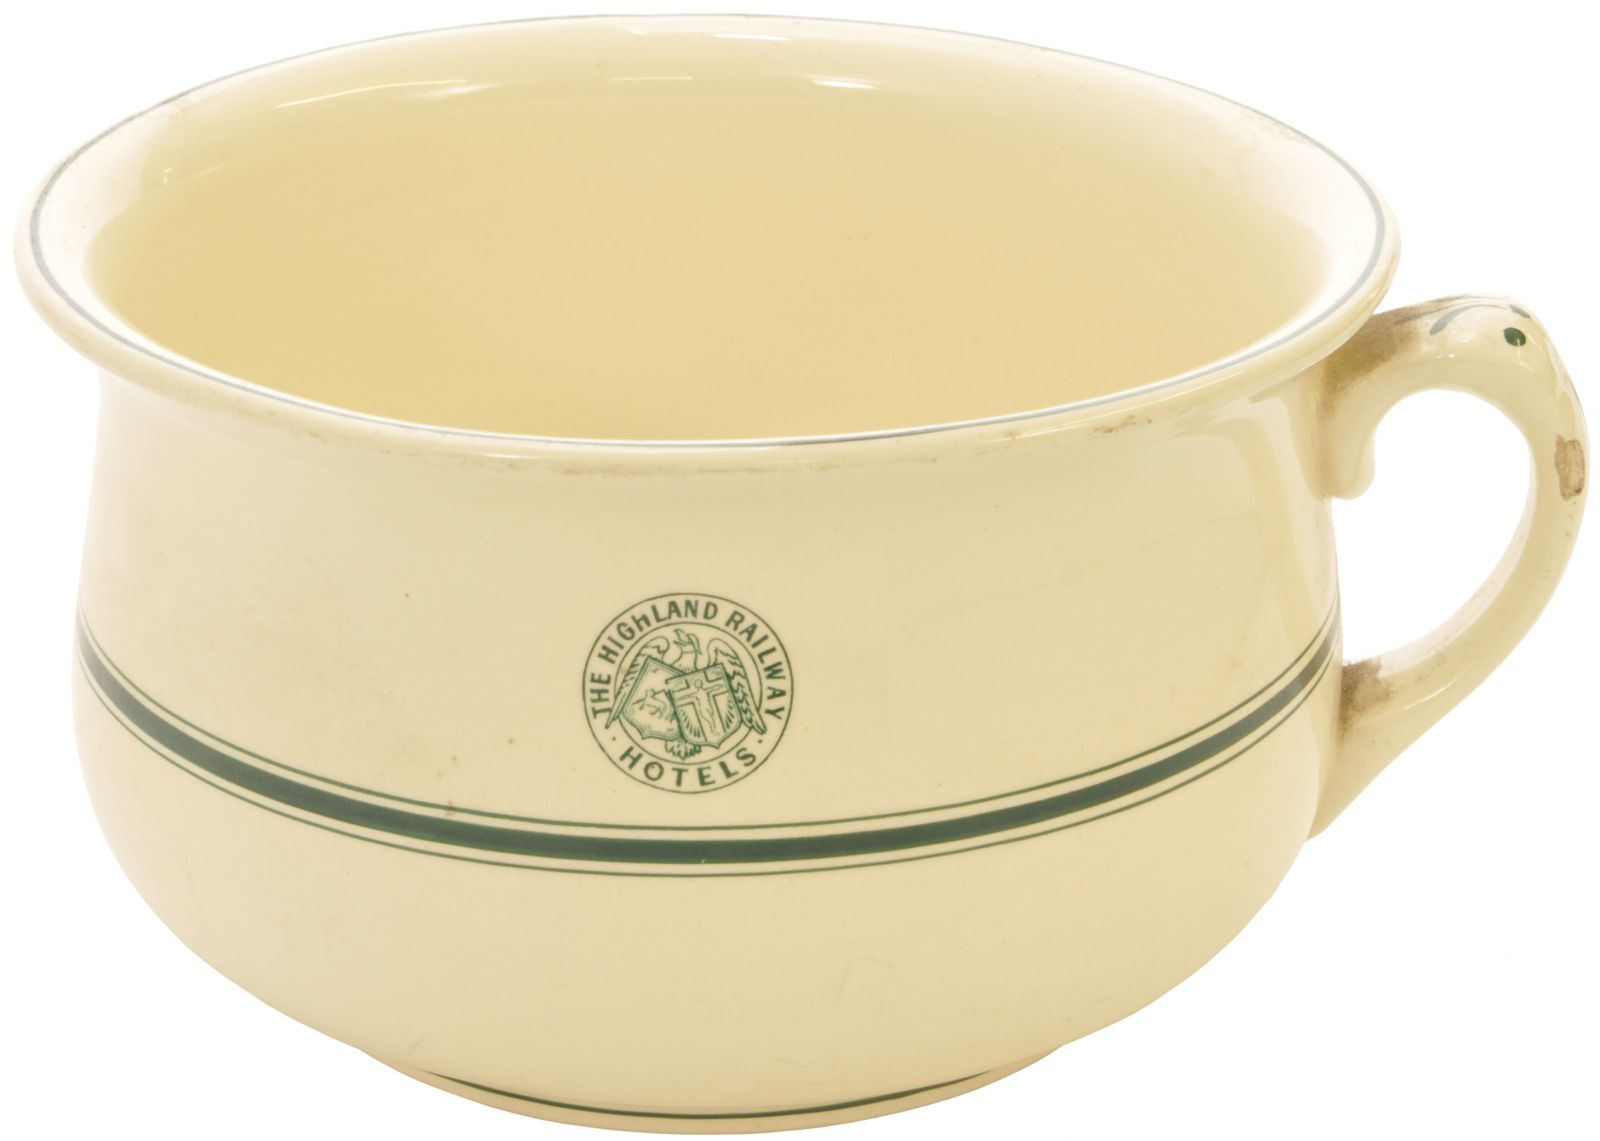 Lot 48 - China, Highland Railway Chamber Pot: A Highland Railway Hotels chamber pot by John Donaldson of